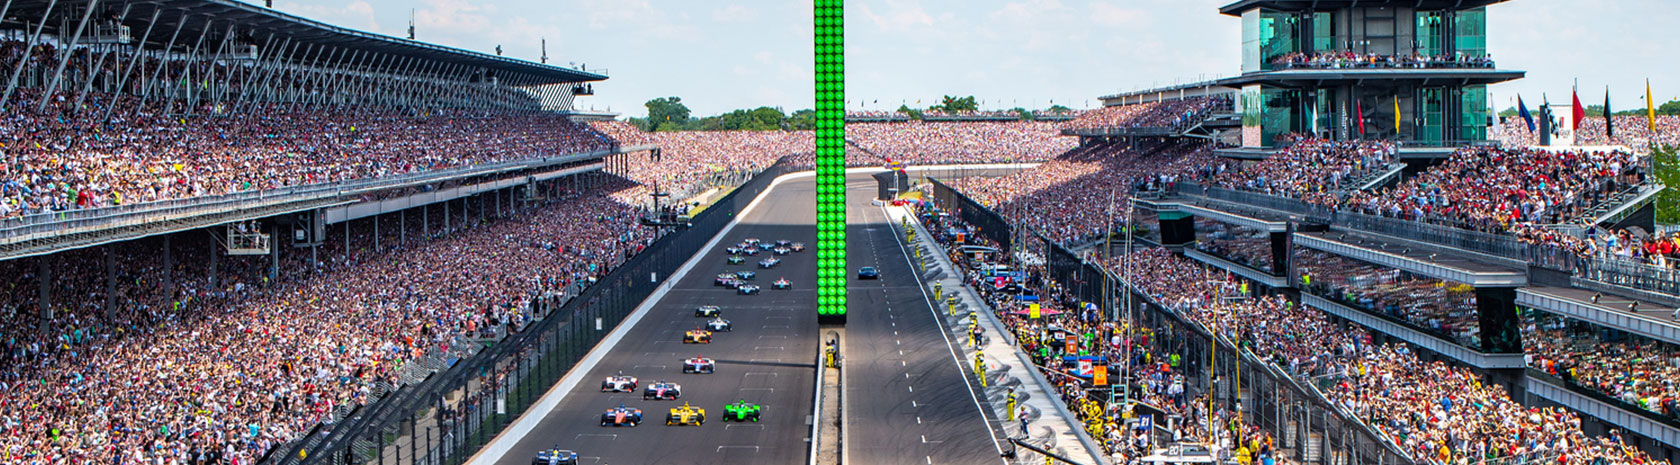 A shot of an indy car race in progress with packed stands